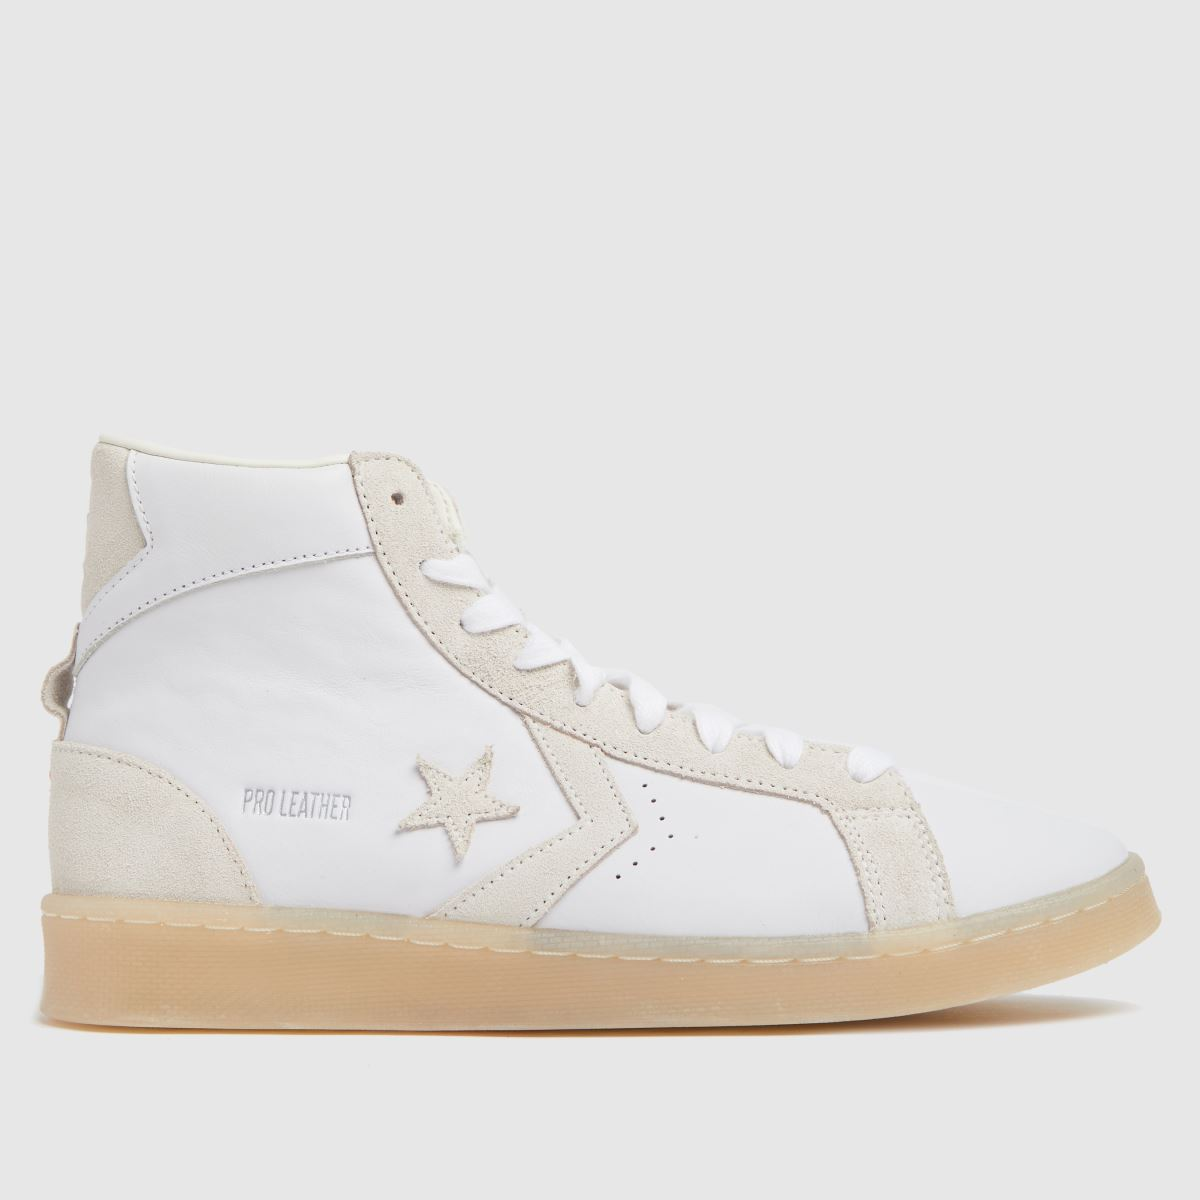 Converse White Hi Pro Leather Mid Trainers